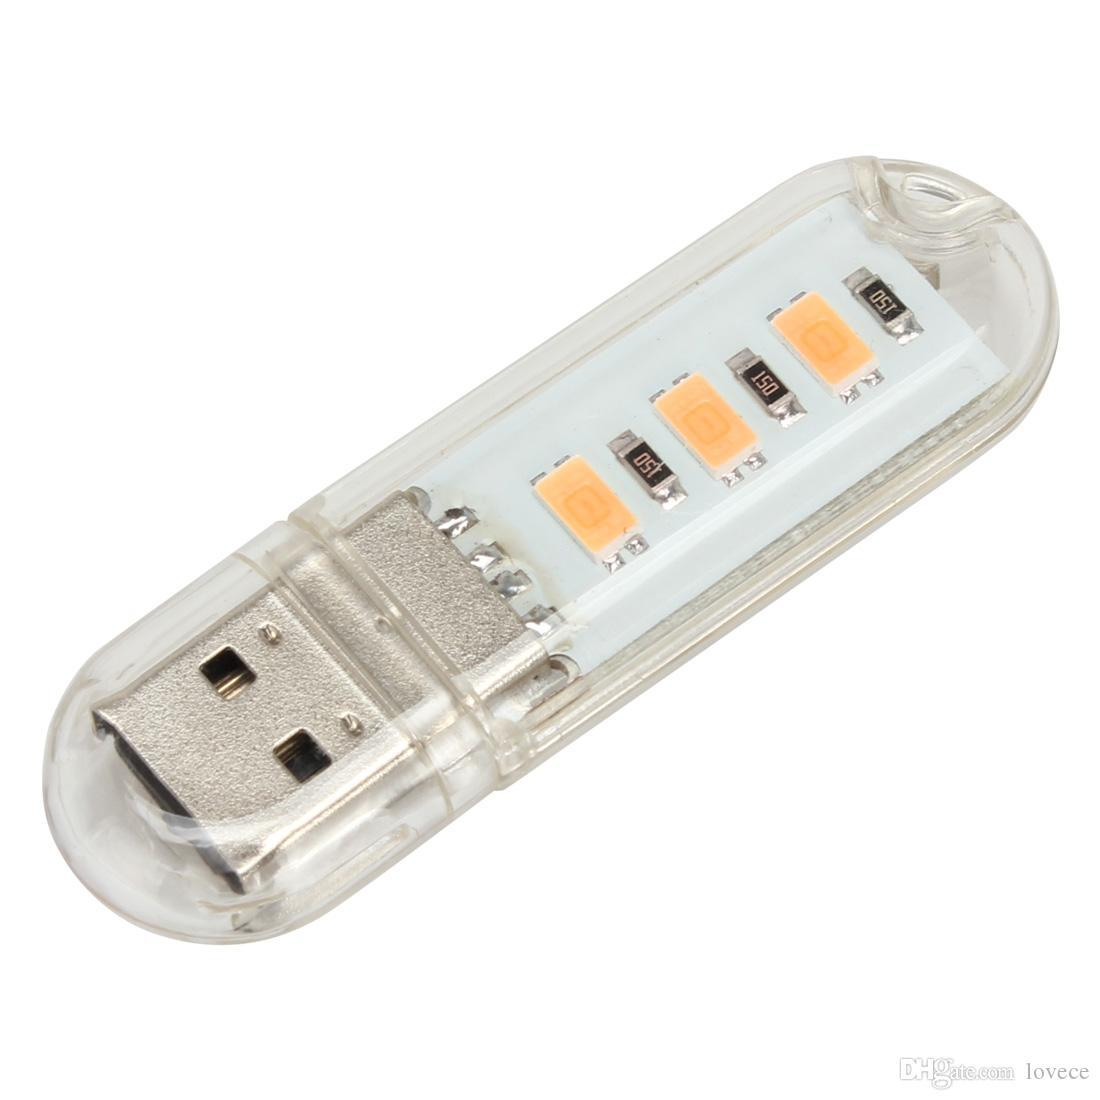 5V 1.5W 3 x 2835 LED Beads Small USB Night Light with Warm Light / White Light EGS_329